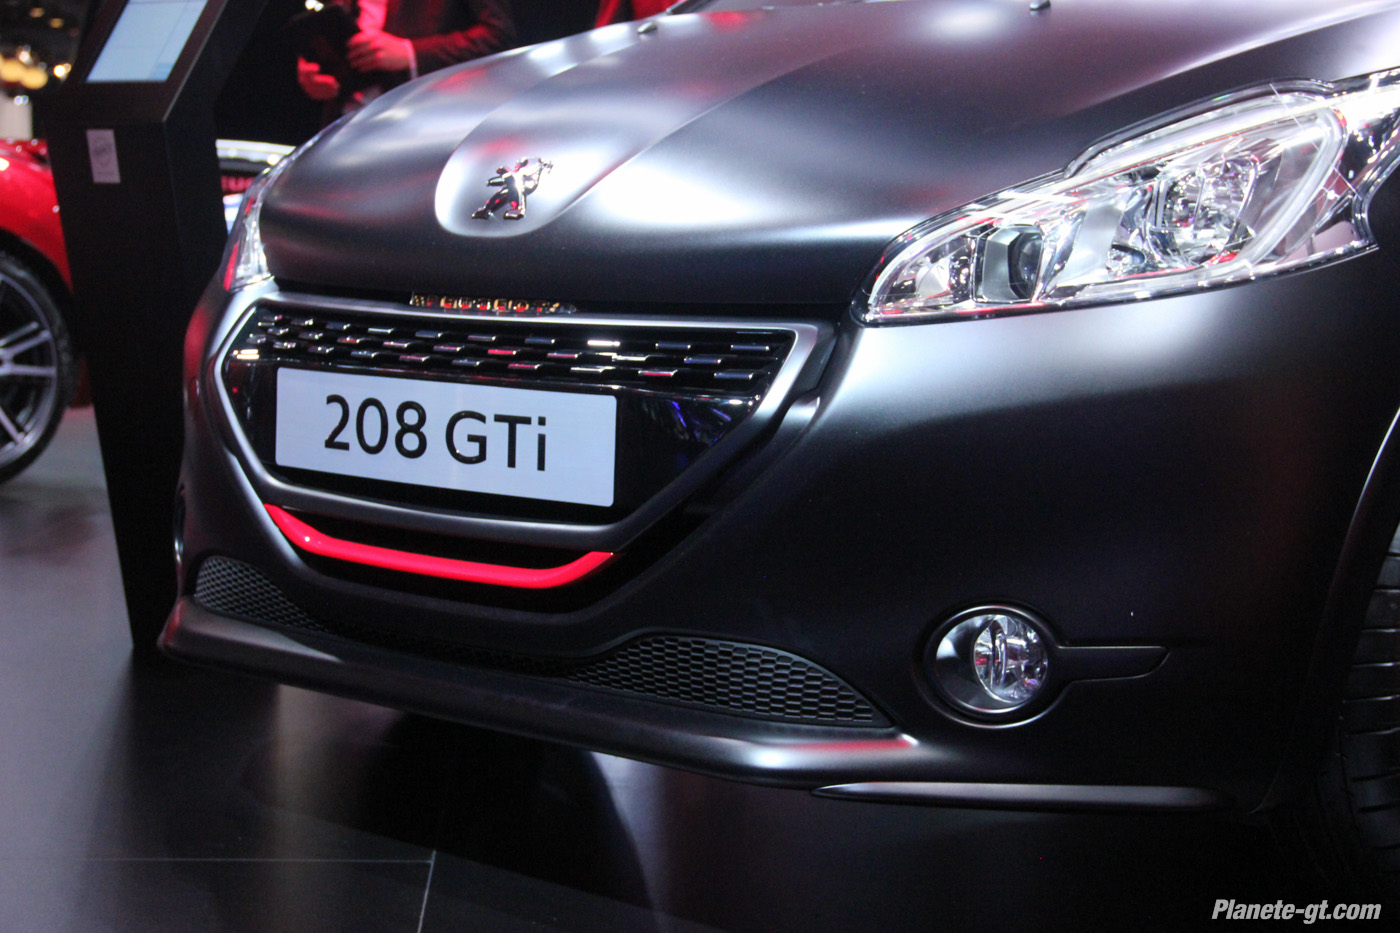 pr sentation vid o peugeot 208 gti 30th au mondial auto plan te. Black Bedroom Furniture Sets. Home Design Ideas